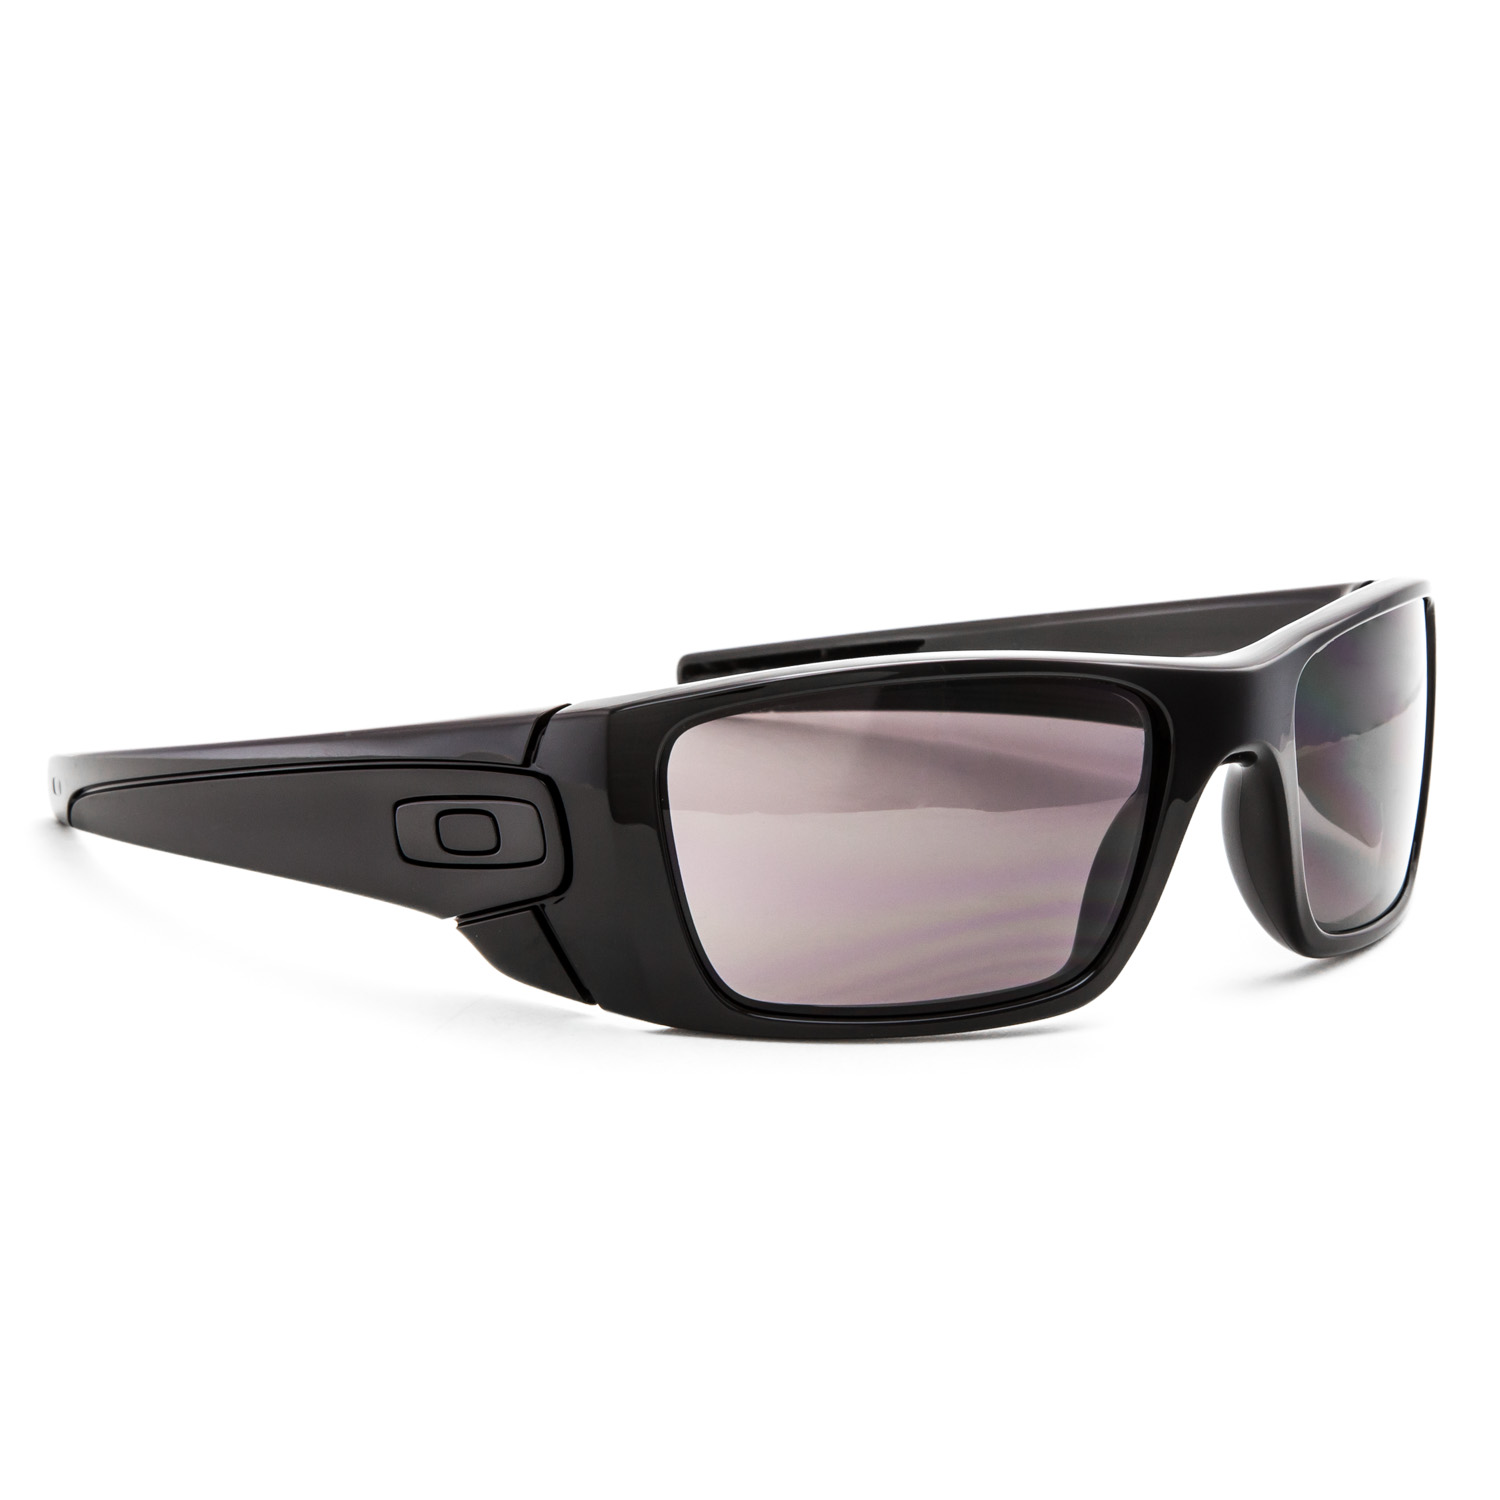 679402ad09 Oakley Fuel Cell Sunglasses Polished Black Oo9096 01 « Heritage Malta